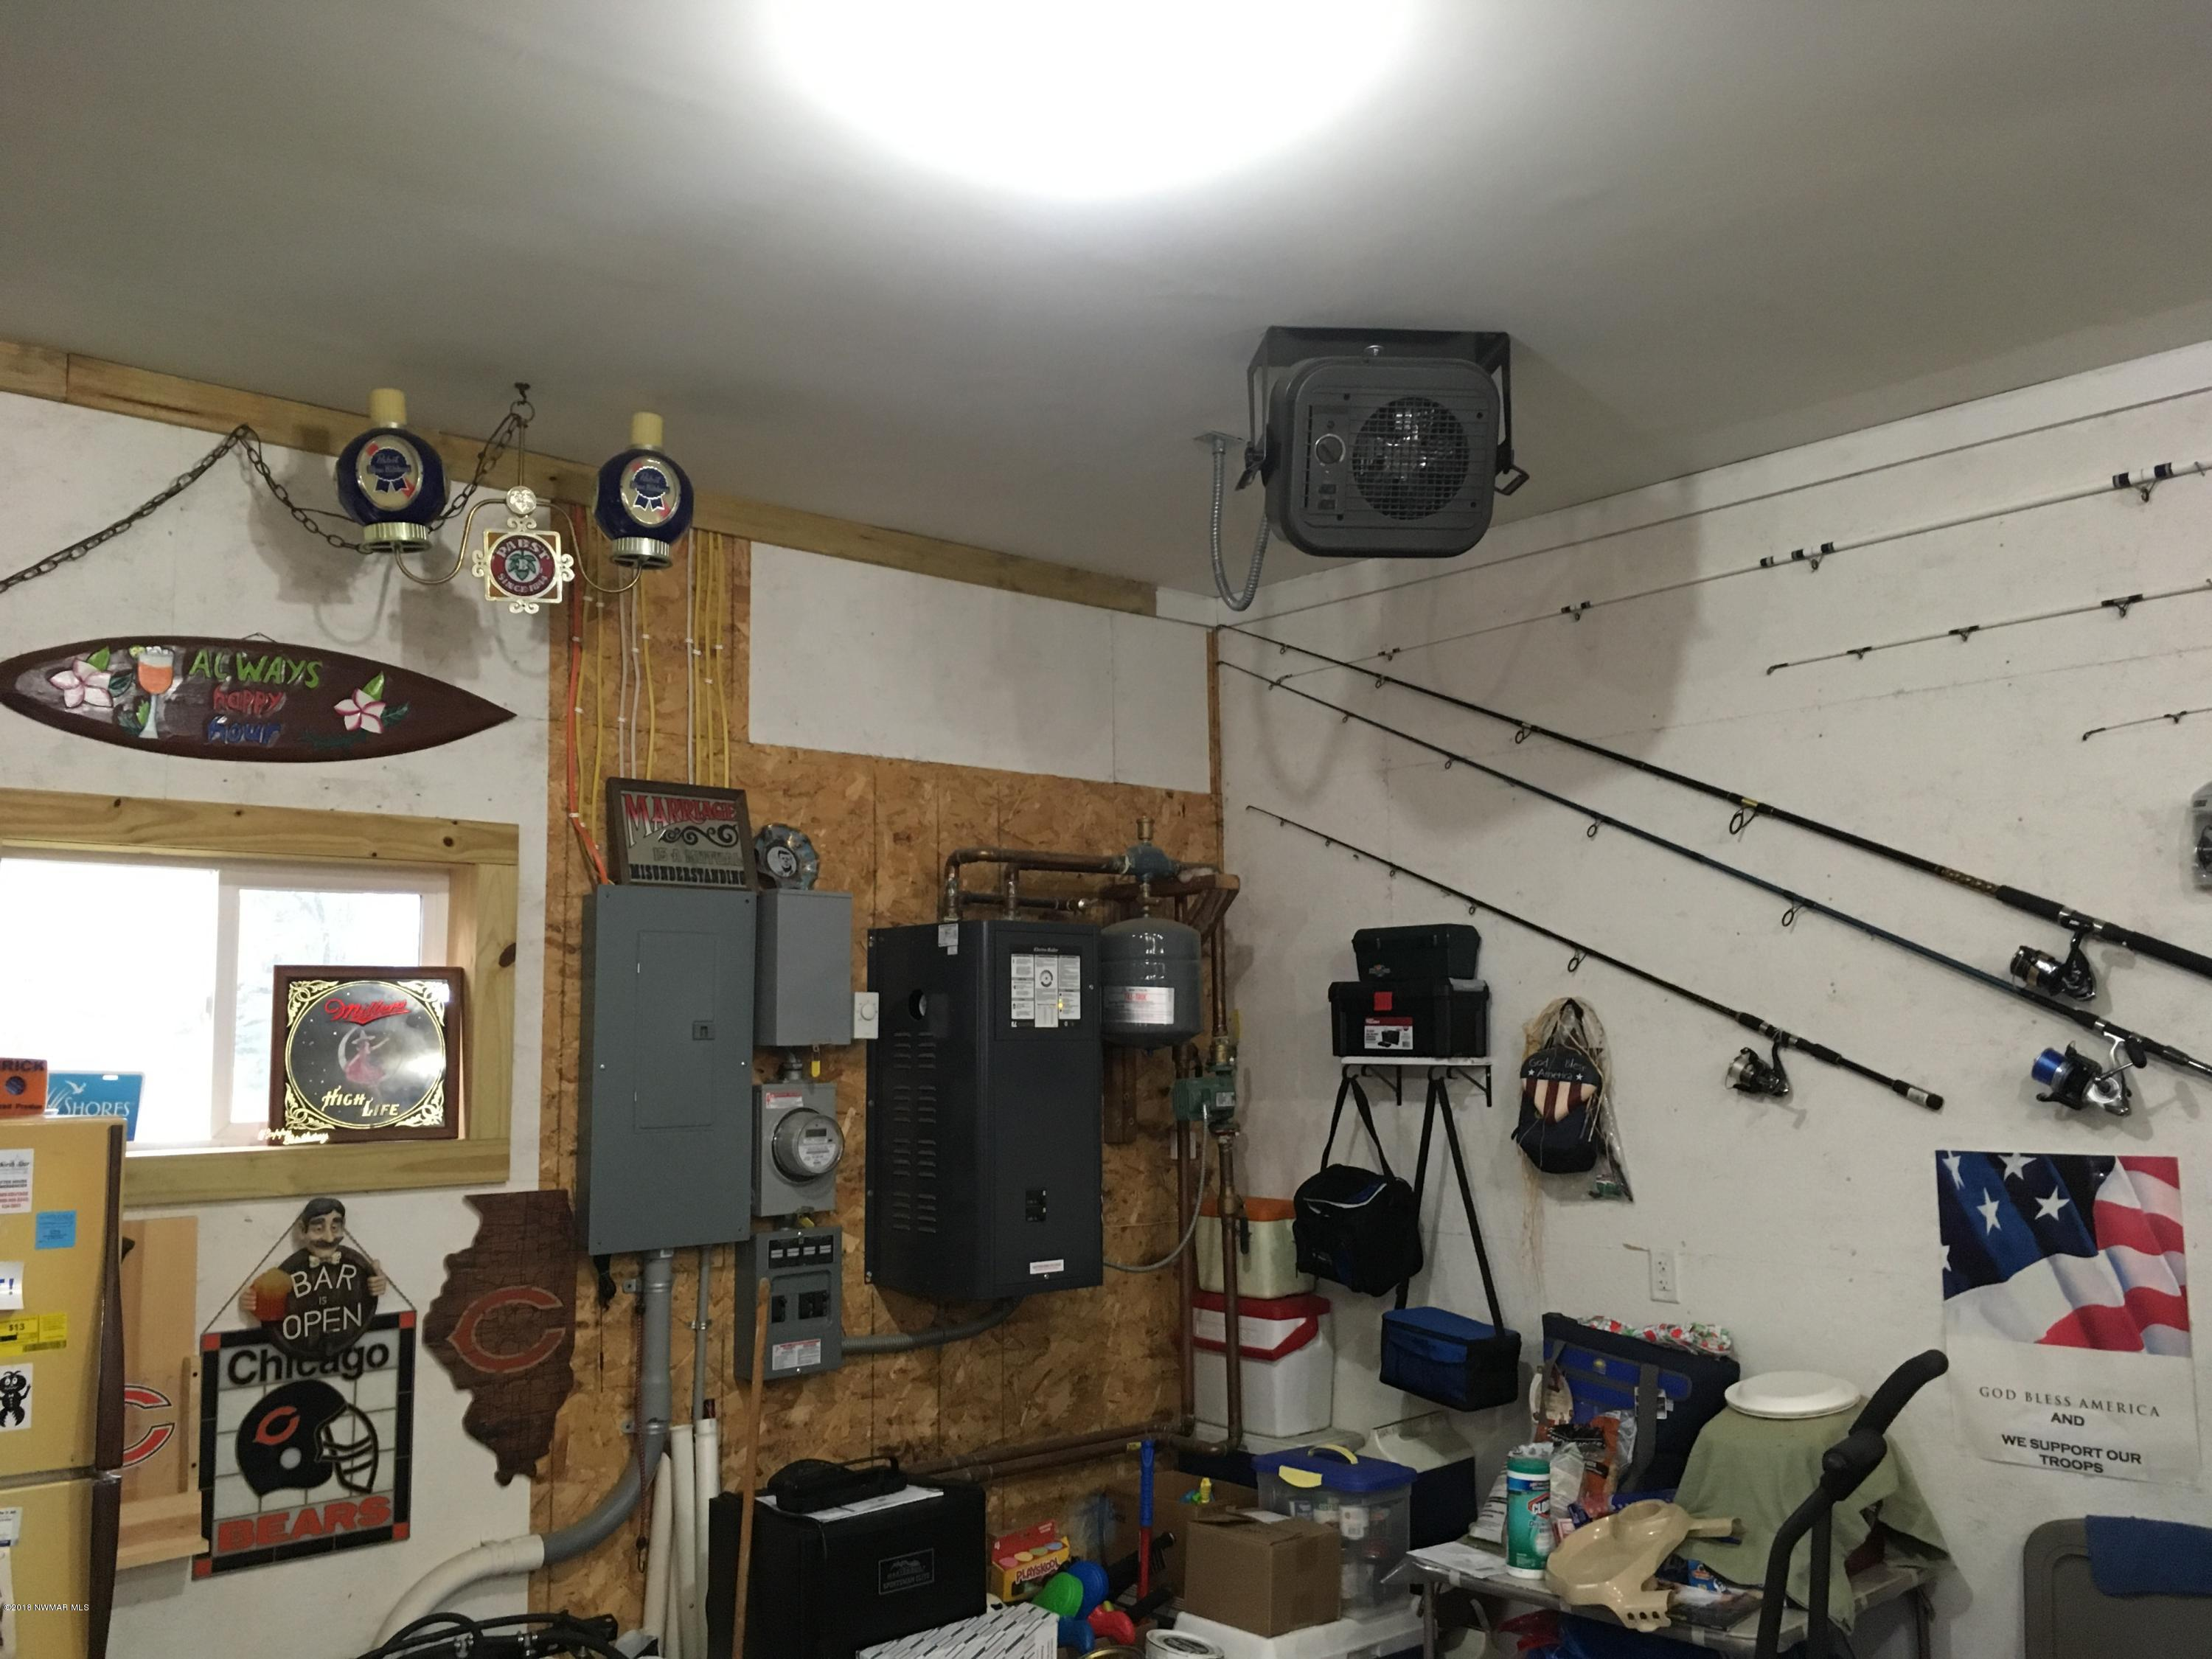 100 amp service , tubular heating in cement, plus electric heater on ceiling , with 2 overhead fans.